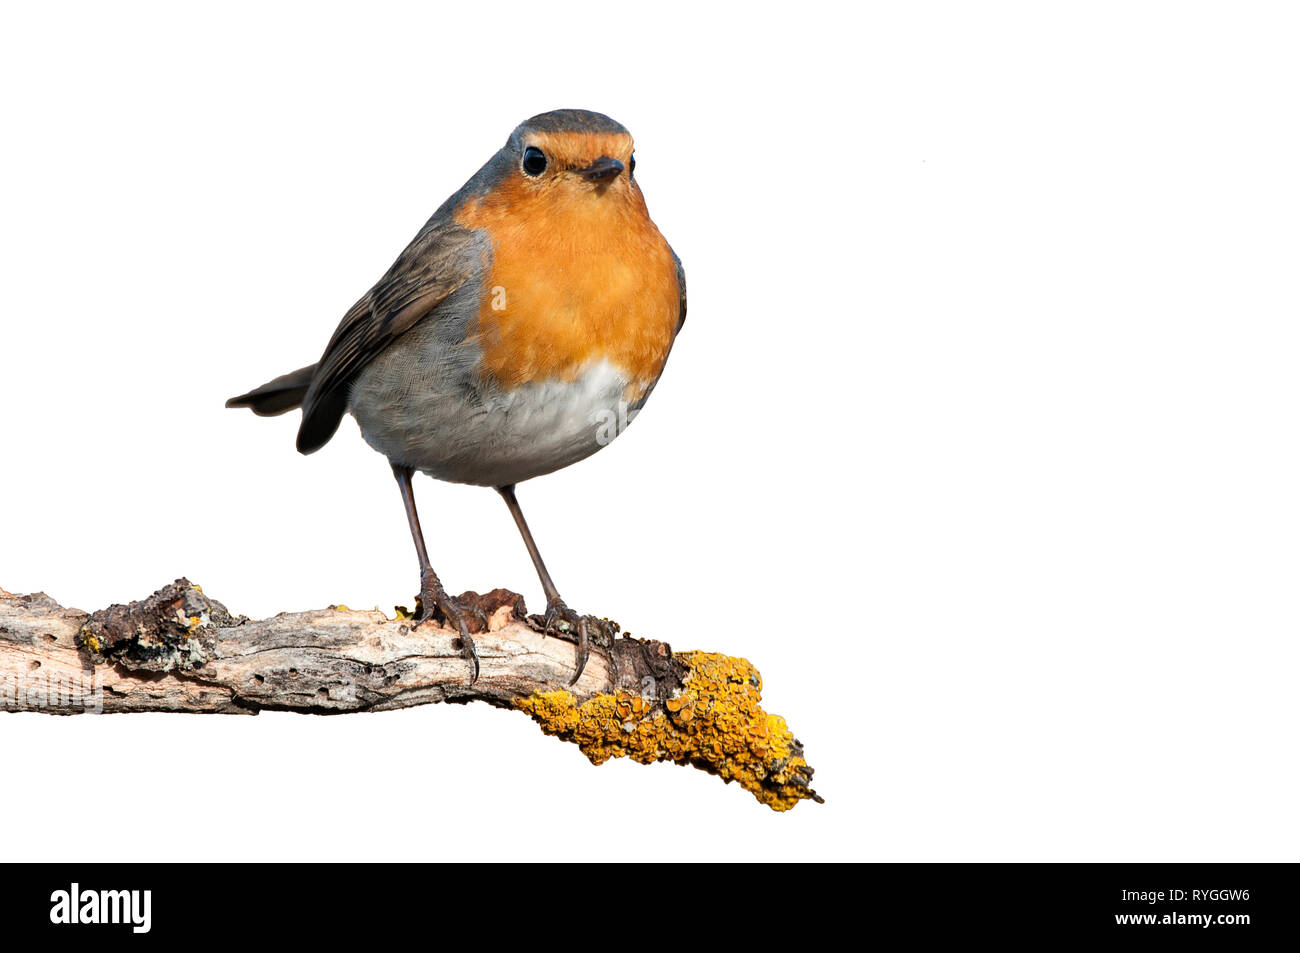 Robin - Erithacus rubecula, standing on a branch with white background - Stock Image